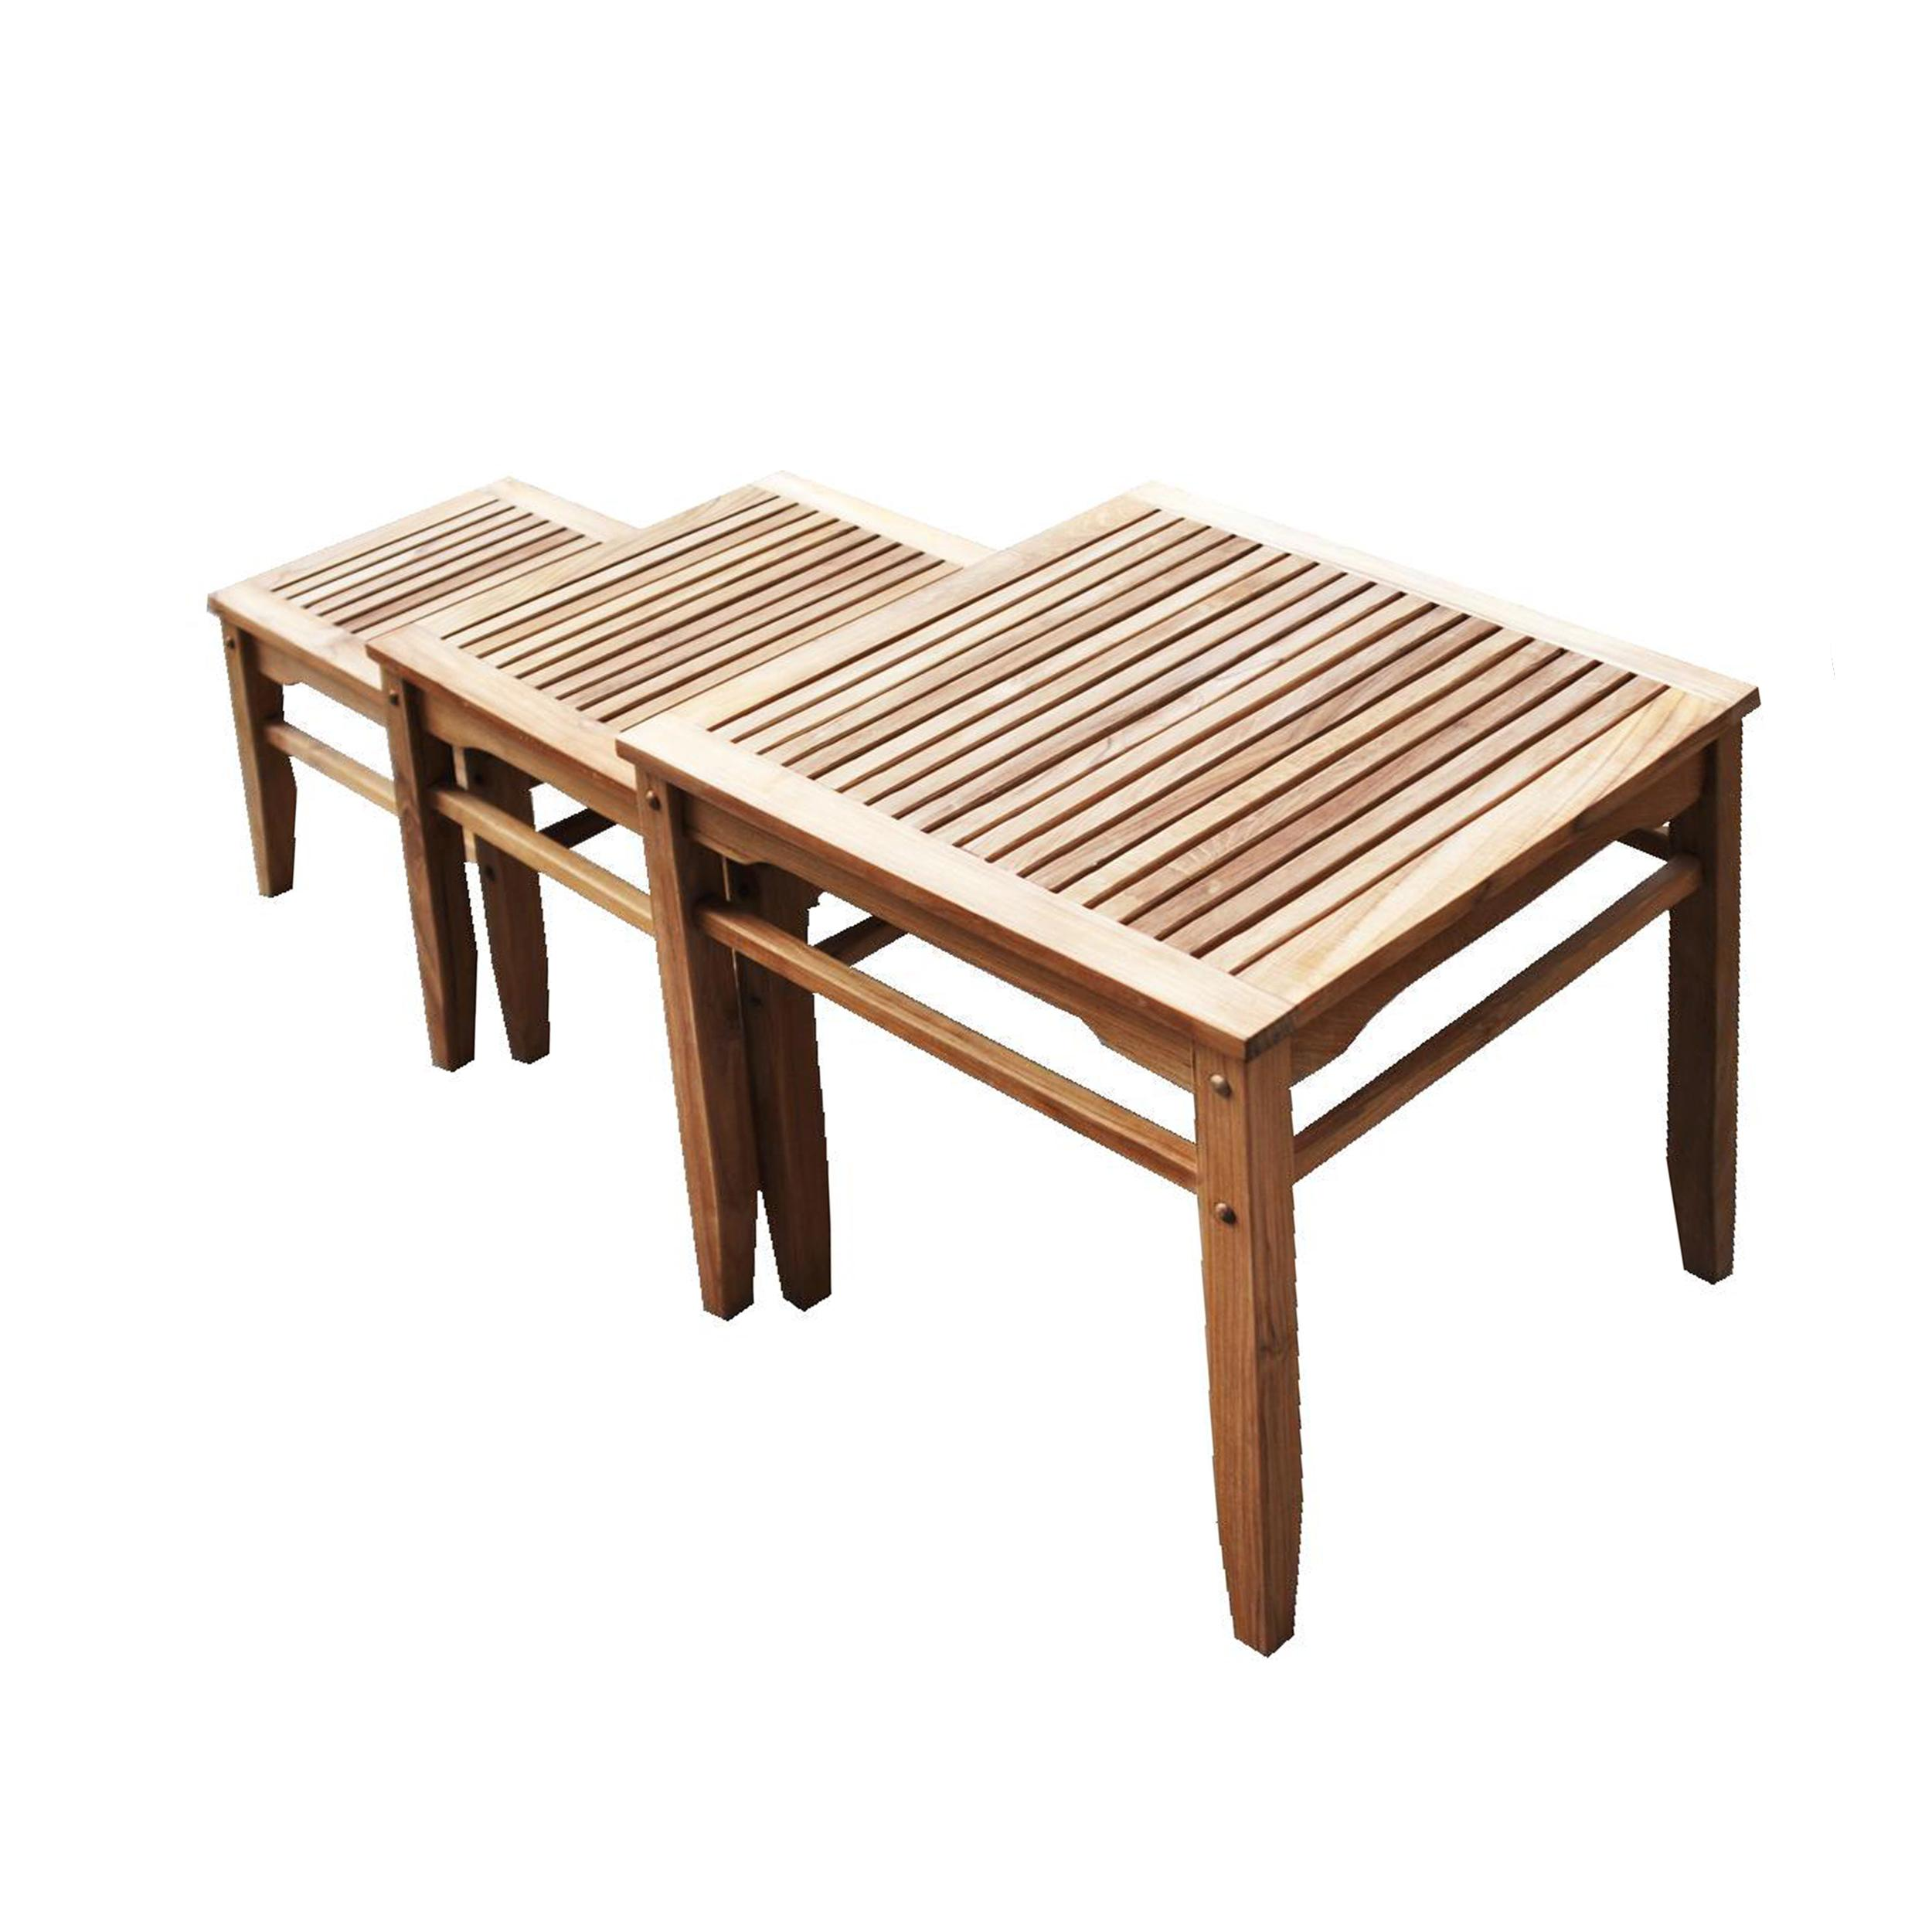 furniture elegant teak end table sets nesting set quick drying slatted tabletop mission inspired craftsman style nests for easy storage outdoor sidetable ideas side full size